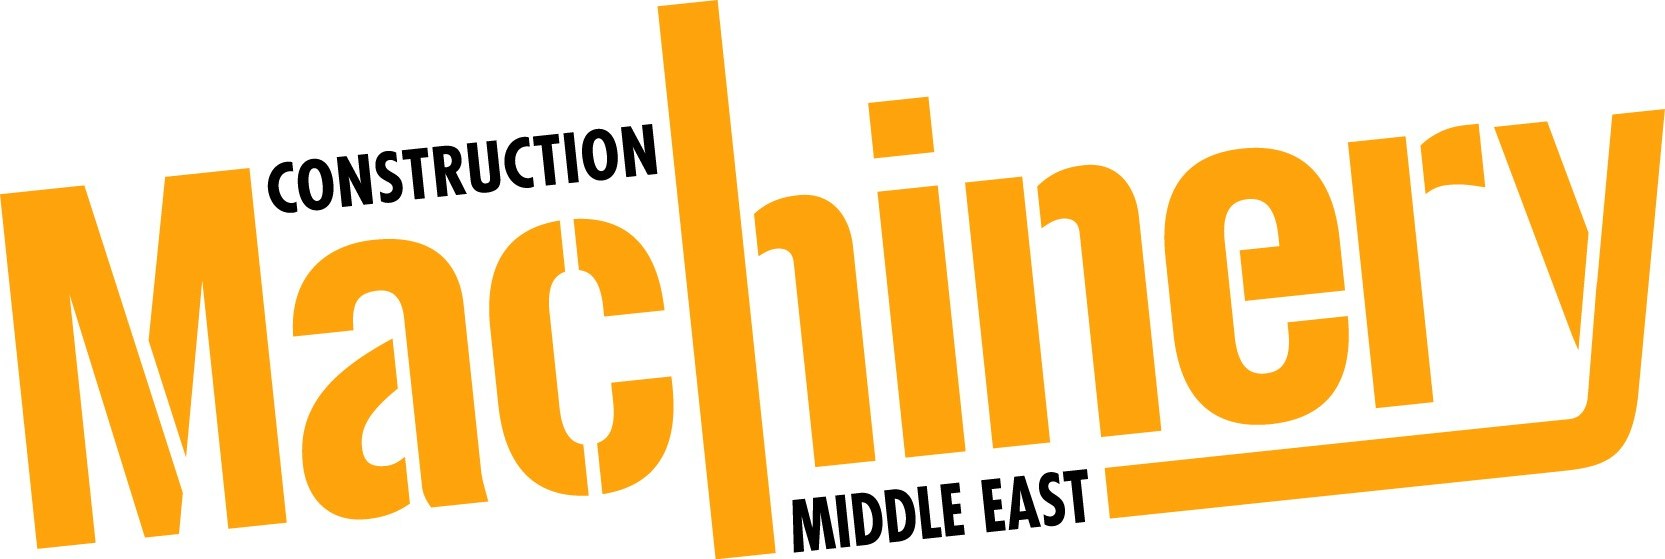 Construction Machinery | MEE | Middle East Energy